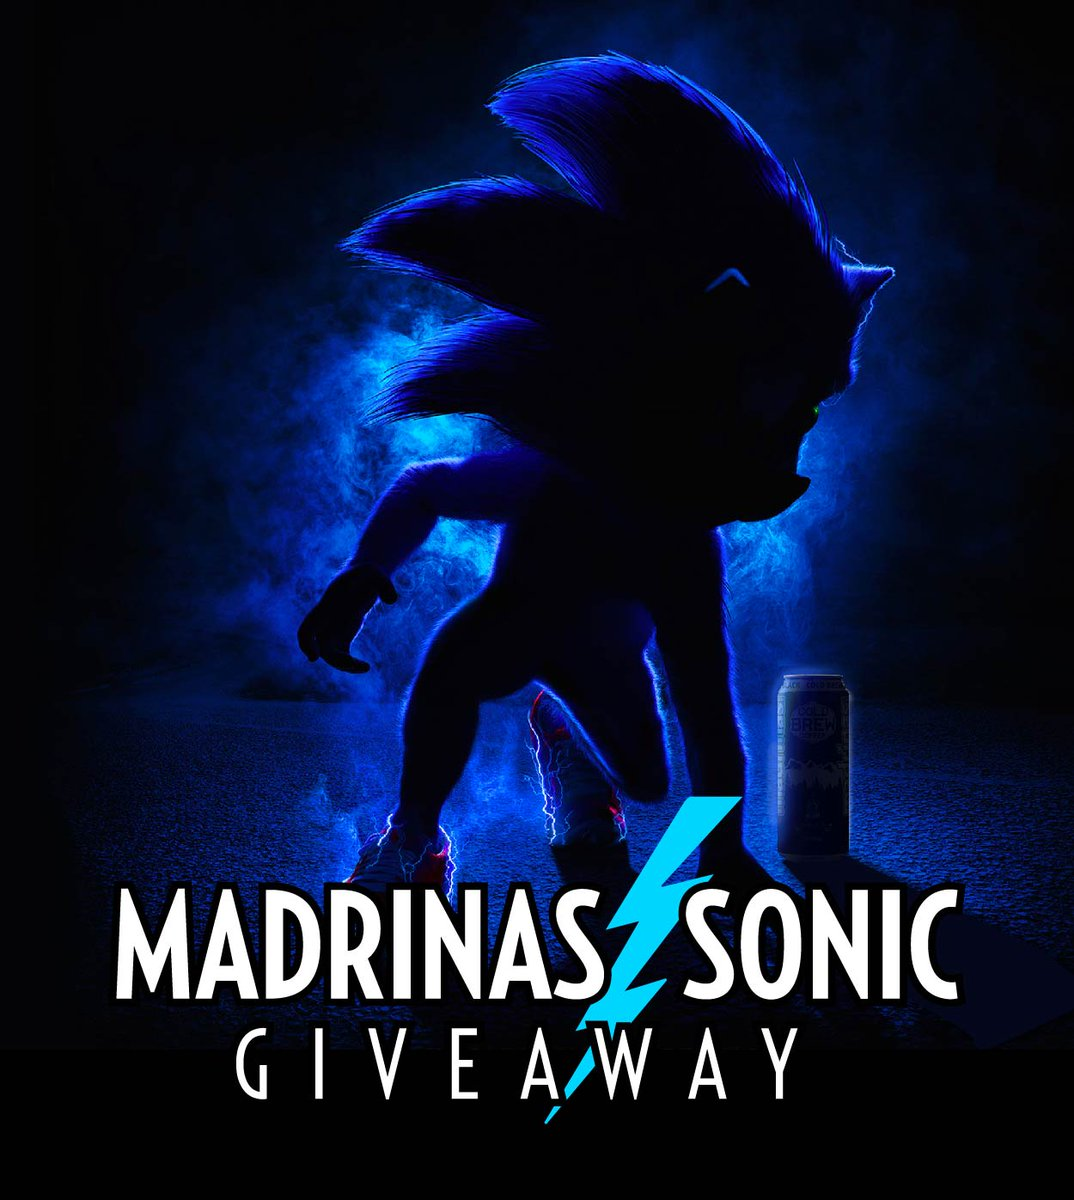 ⚡SONIC GIVEAWAY⚡  Enter for a chance to win an epic Sonic Bundle! #SonicMovie   1⃣ Follow @Madrinas 2⃣ RT this post 3⃣ BONUS ENTRY⚡️ Reply with your fav Sonic meme!